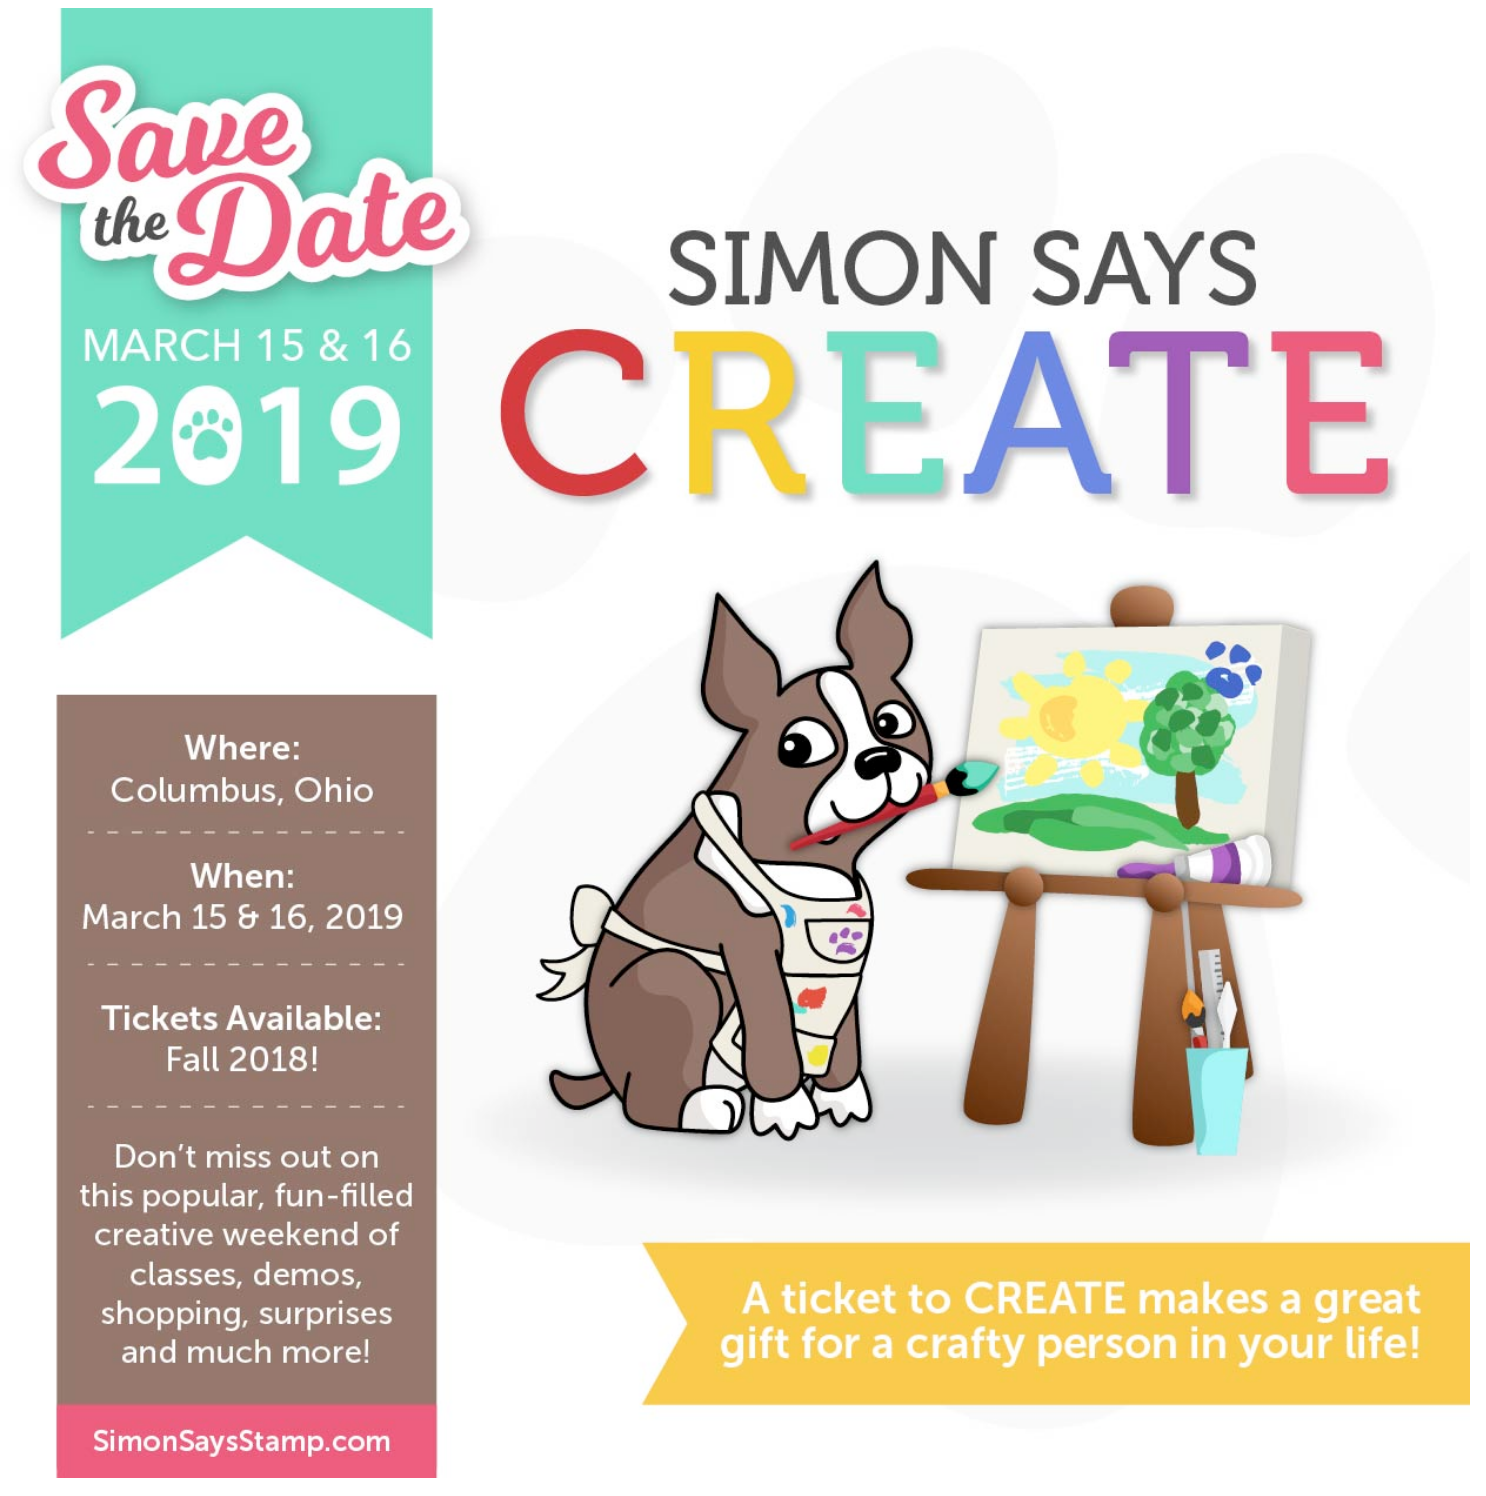 Simon Says CREATE 2019 Ticket A Preview Image